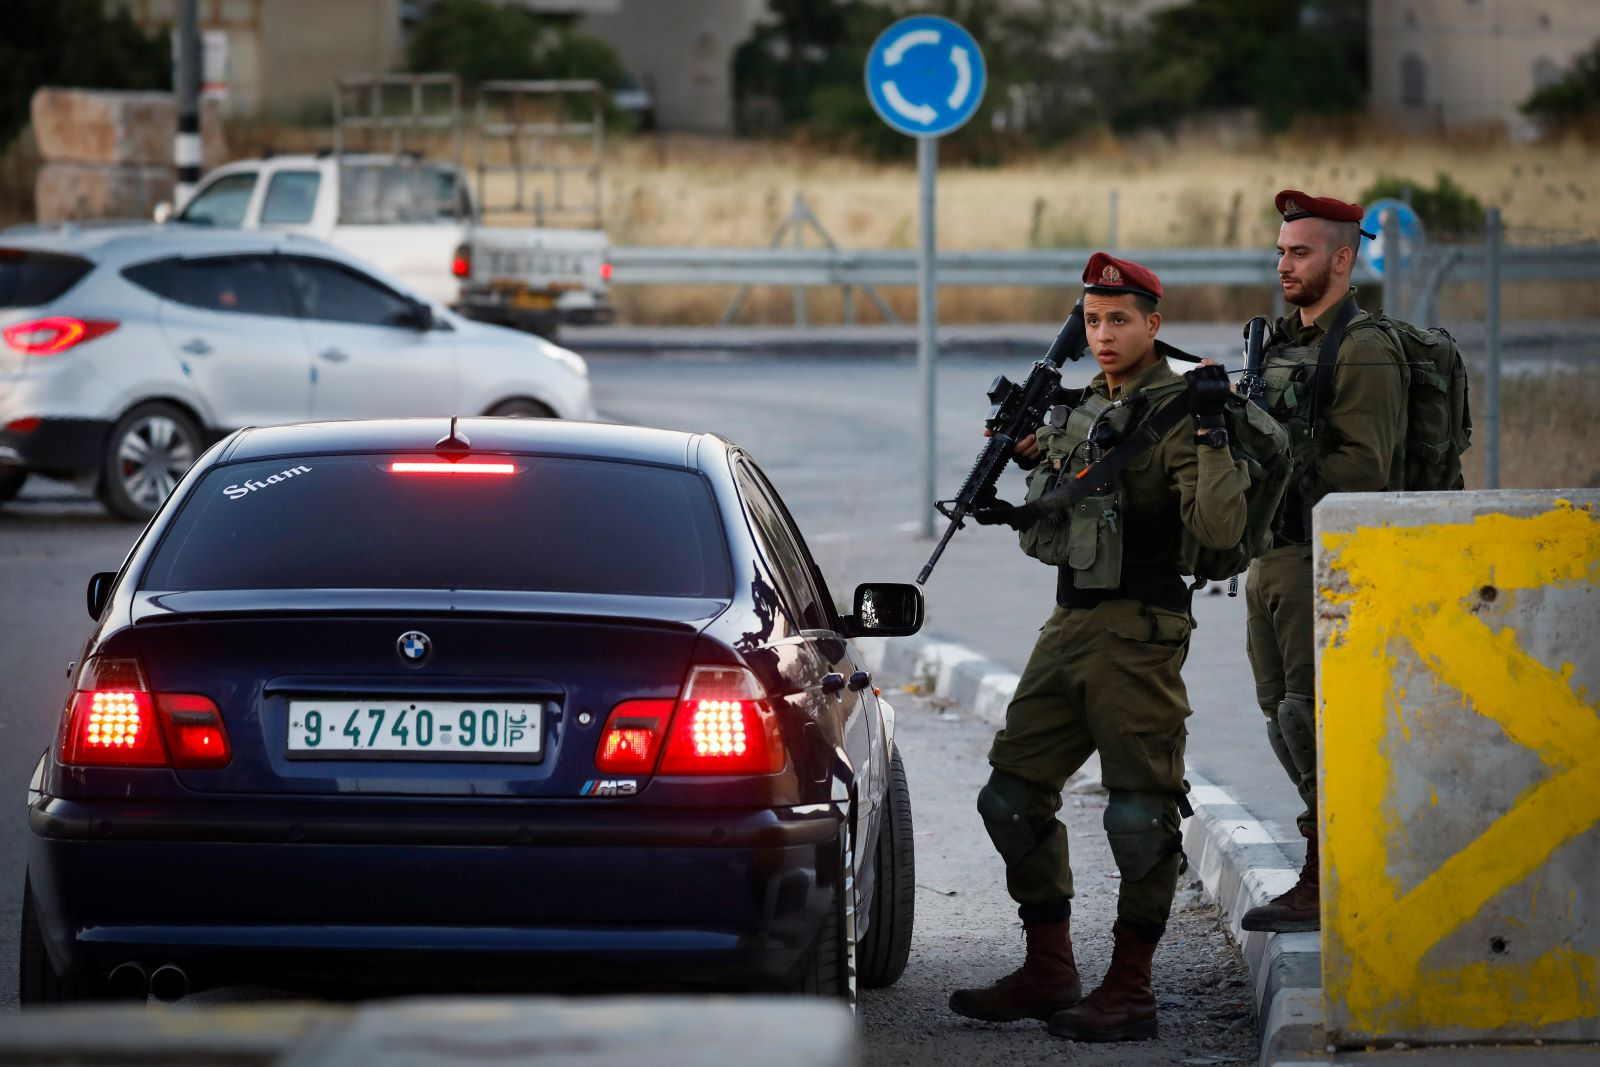 Israeli soldiers check IDs of Palestinian drivers at a checkpoint at the entrance of the West Bank city of Hebron, July 2, 2019. (Wisam Hashlamoun/Flash90)